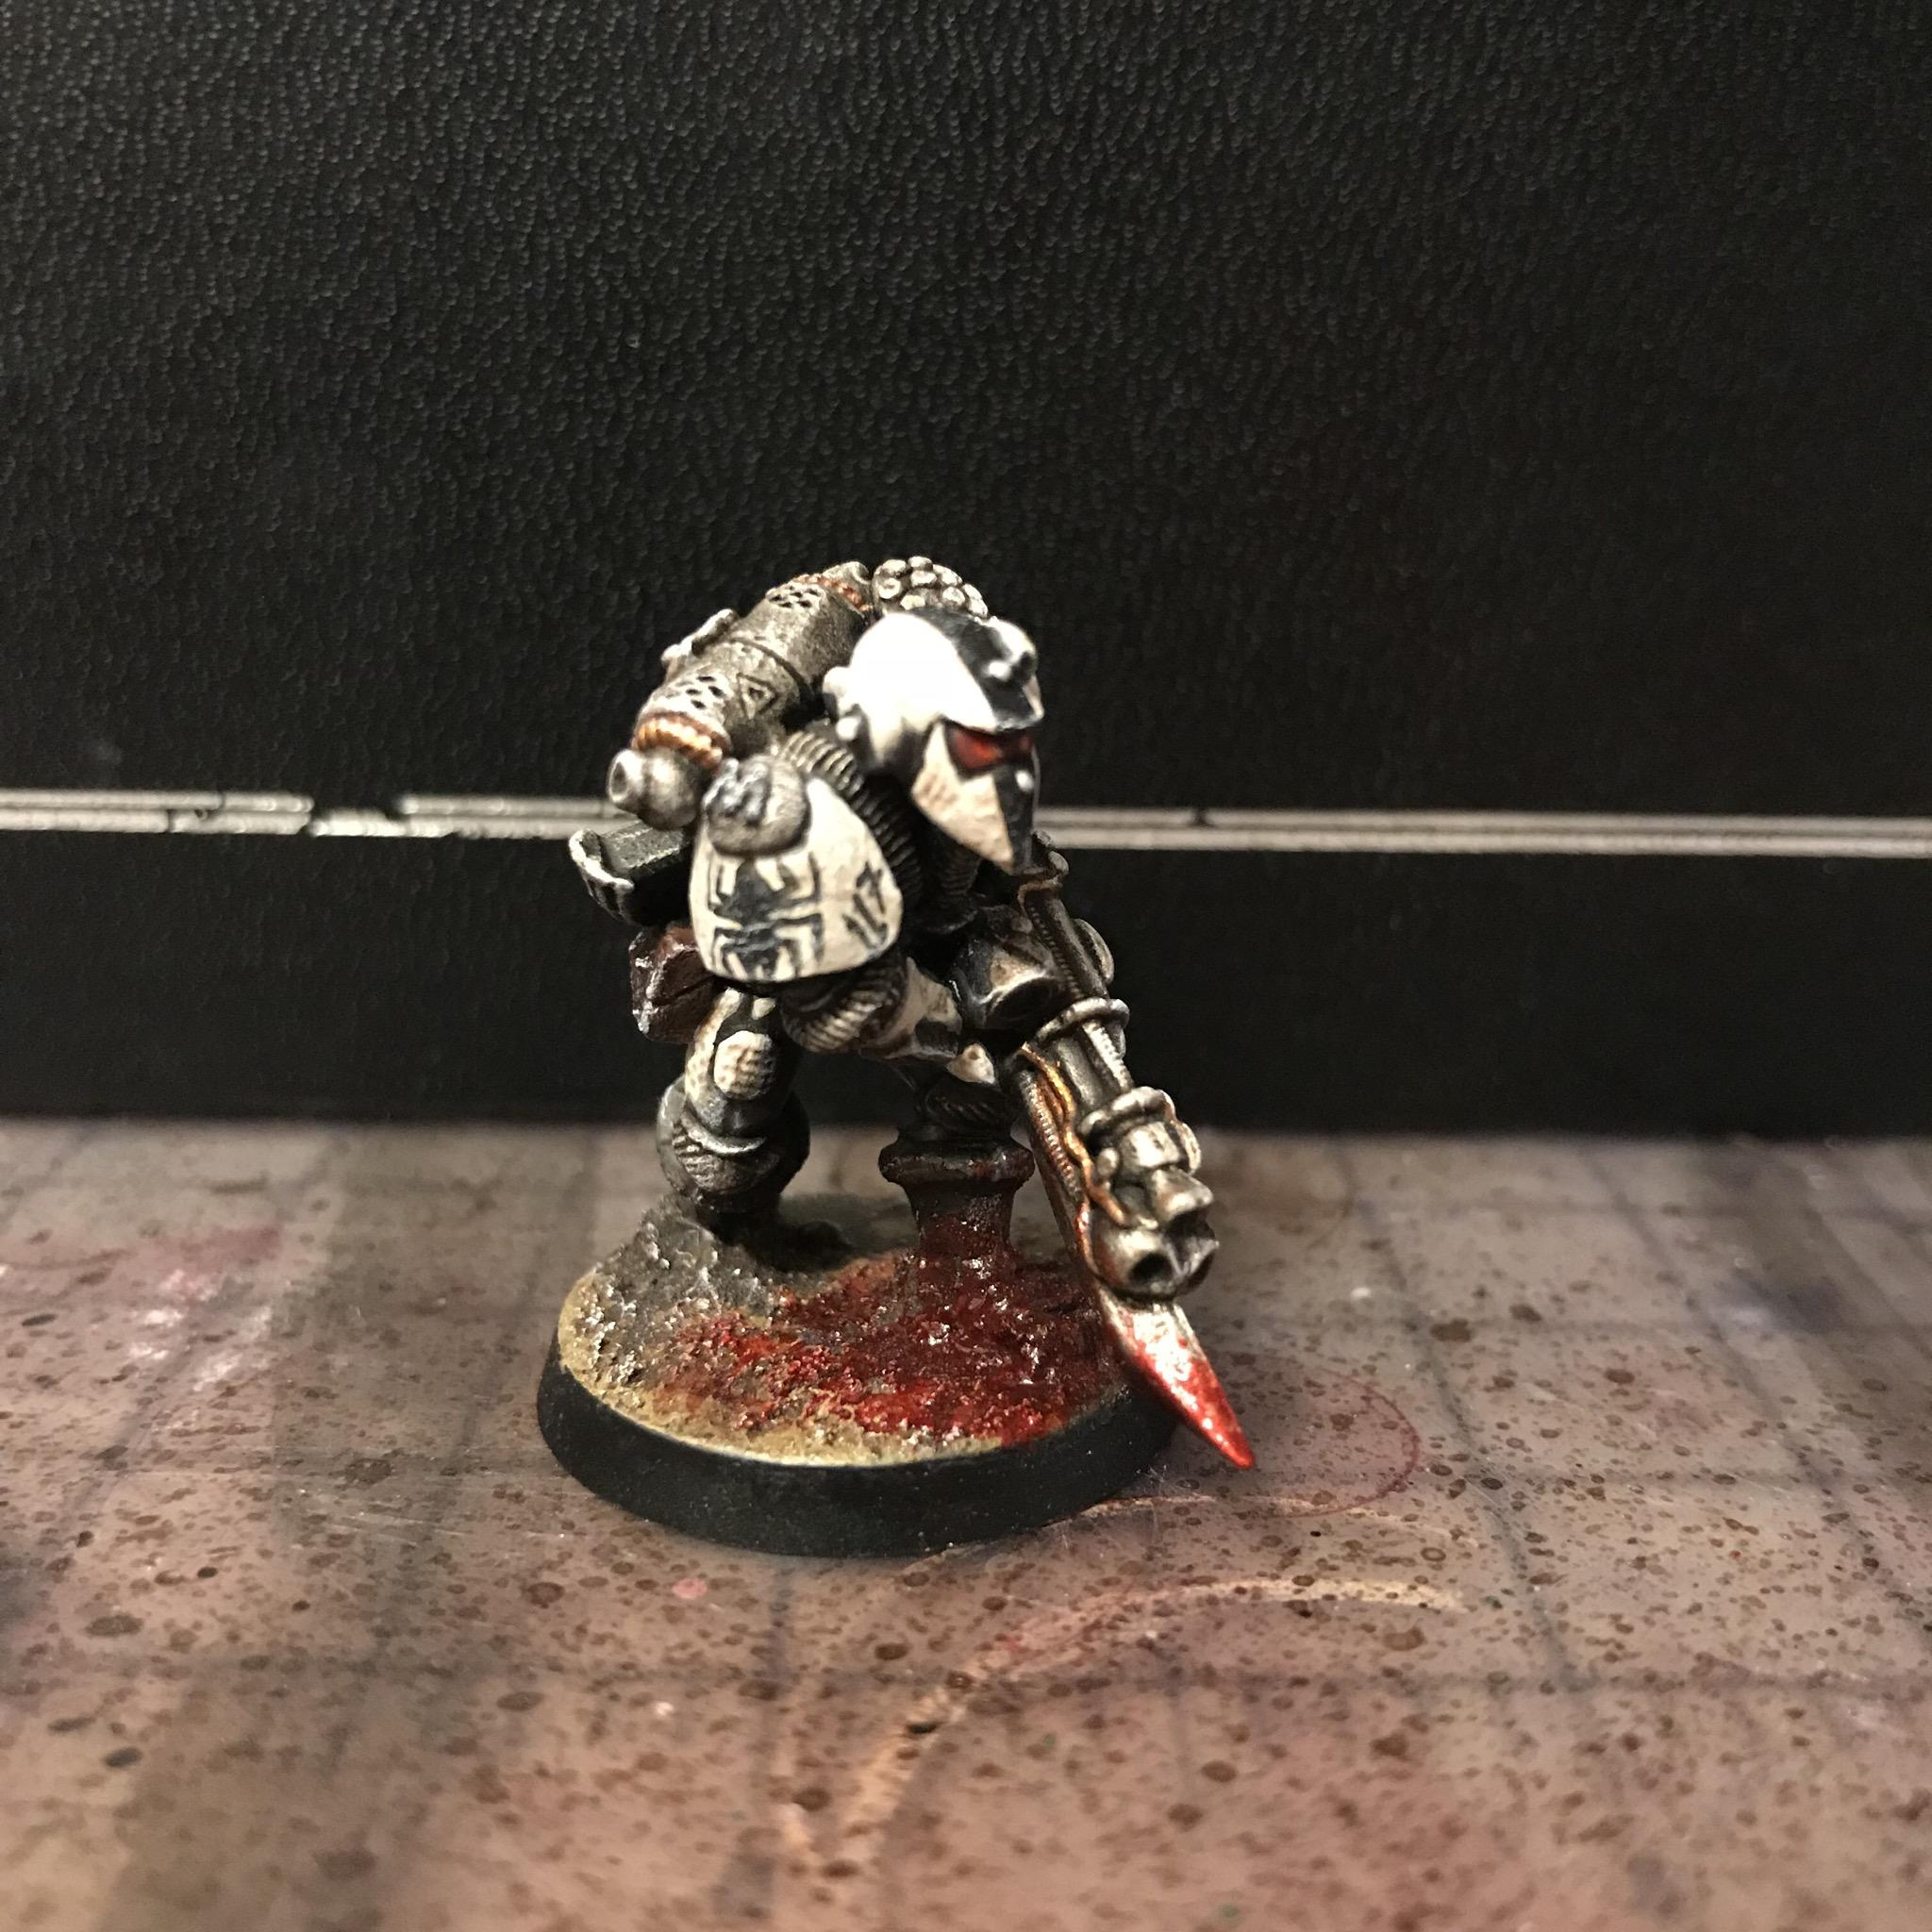 117, 2nd, 41st, Adeptus, And, Armor, Astartes, Badab, Battle, Bolters, Boltguns, Brother, Brothers, Brutal, C100, Chaos, Chaotic, Chapter, Chapters, Combi, Combi-bolter, Combi-disintegrator, Combi-weapon, Corsairs, Damned, Dark, Darkness, Deep, Disintegrator, Eye, Far, Fj, Founding, Future, God, Gods, Grim, Heresy, Hobby, Horus, Human, Humans, Imperial, Imperium, Kaos, Kill, Legionaries, Legionnaire, Lost, Malal, Malice, Man, Mankind, Millennium, Of, Oldhammer, Painted, Pirates, Power, Power Armor, Power Armored, Powers, Raiders, Realms, Recon, Renegade, Renegades, Retro, Rogue, Ruinous, Second, Slaves, Soldier, Space, Space Marines, Spartan, Spider, Spiders, Squad, Successor, Team, Teams, Terror, To, Trader, Traders, Traitor, Trooper, Troopers, Troops, Unit, Void, War, Warhammer 40,000, Warhammer Fantasy, Warp, Weapon